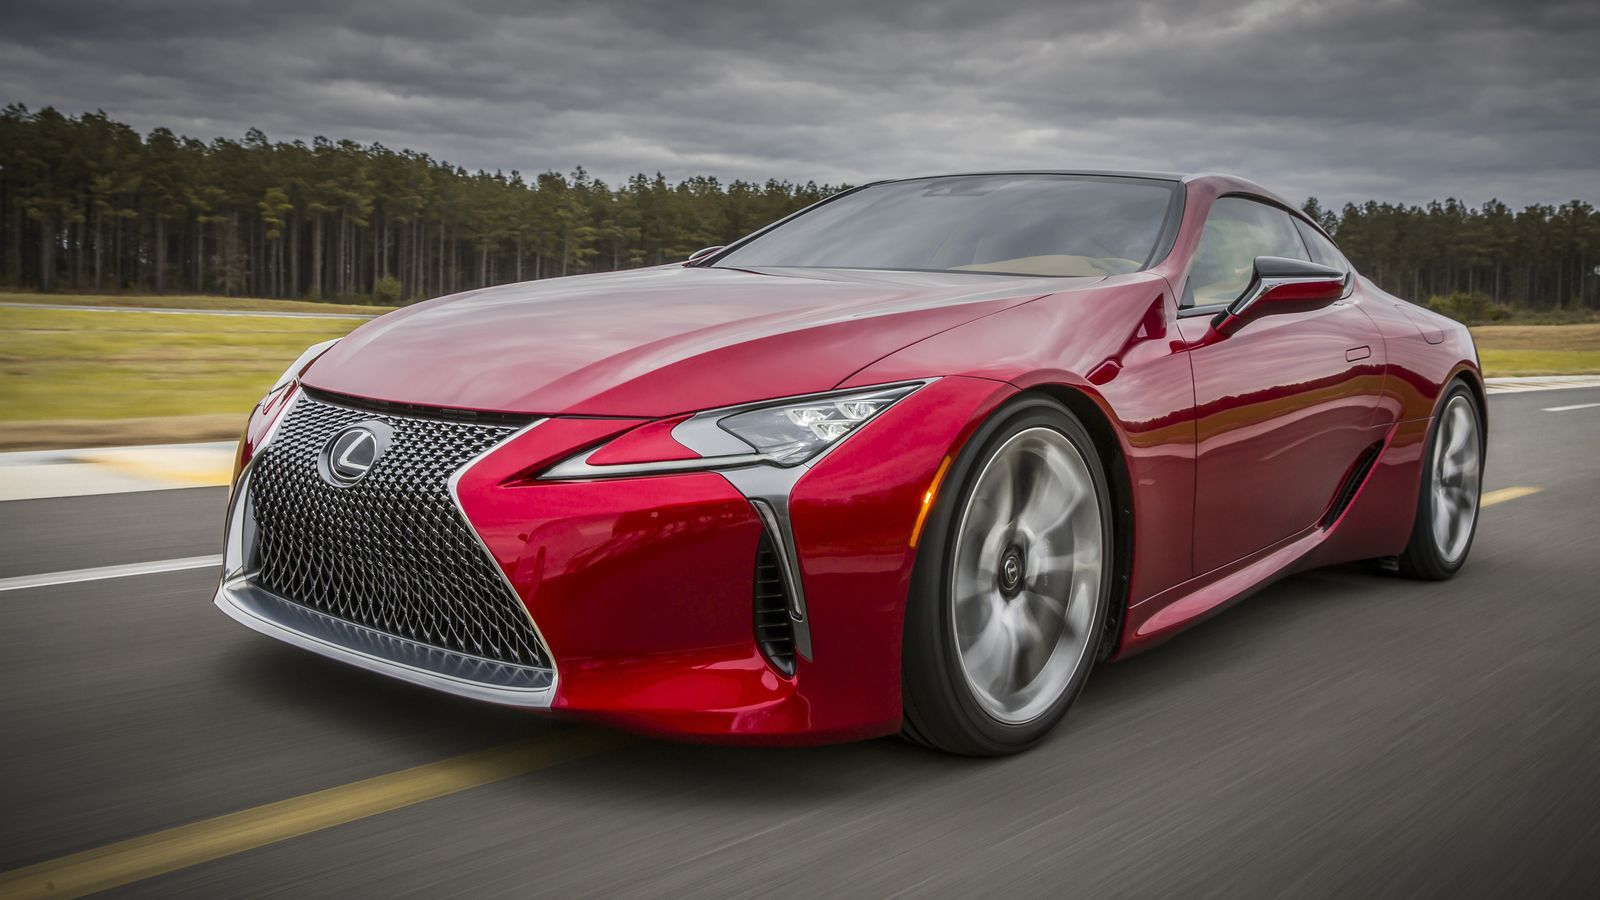 The Lexus LC 500 is a big, powerful, flagship coupe — and